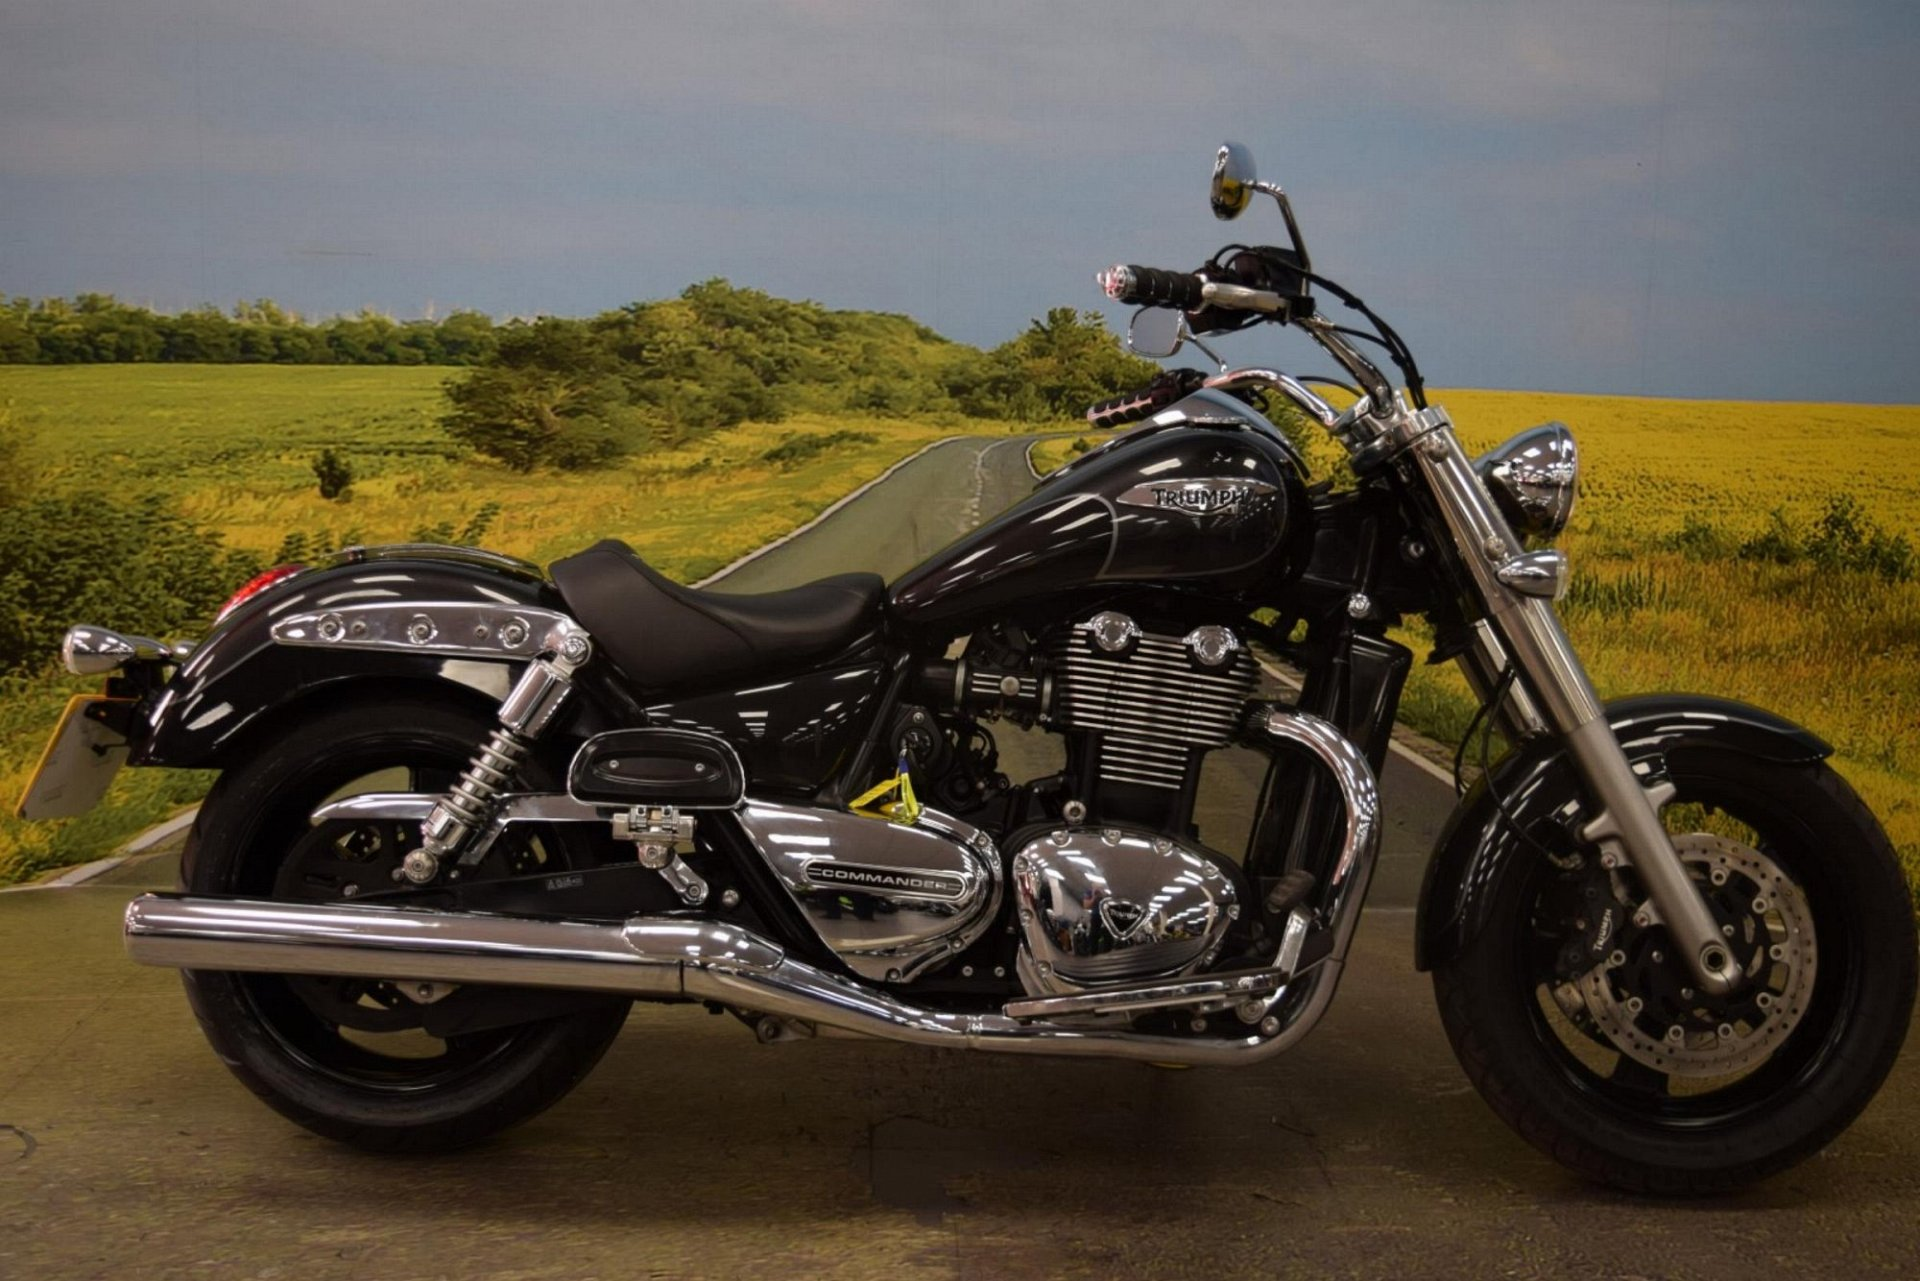 2016 Triumph Thunderbird Commander for sale in Staffordshire